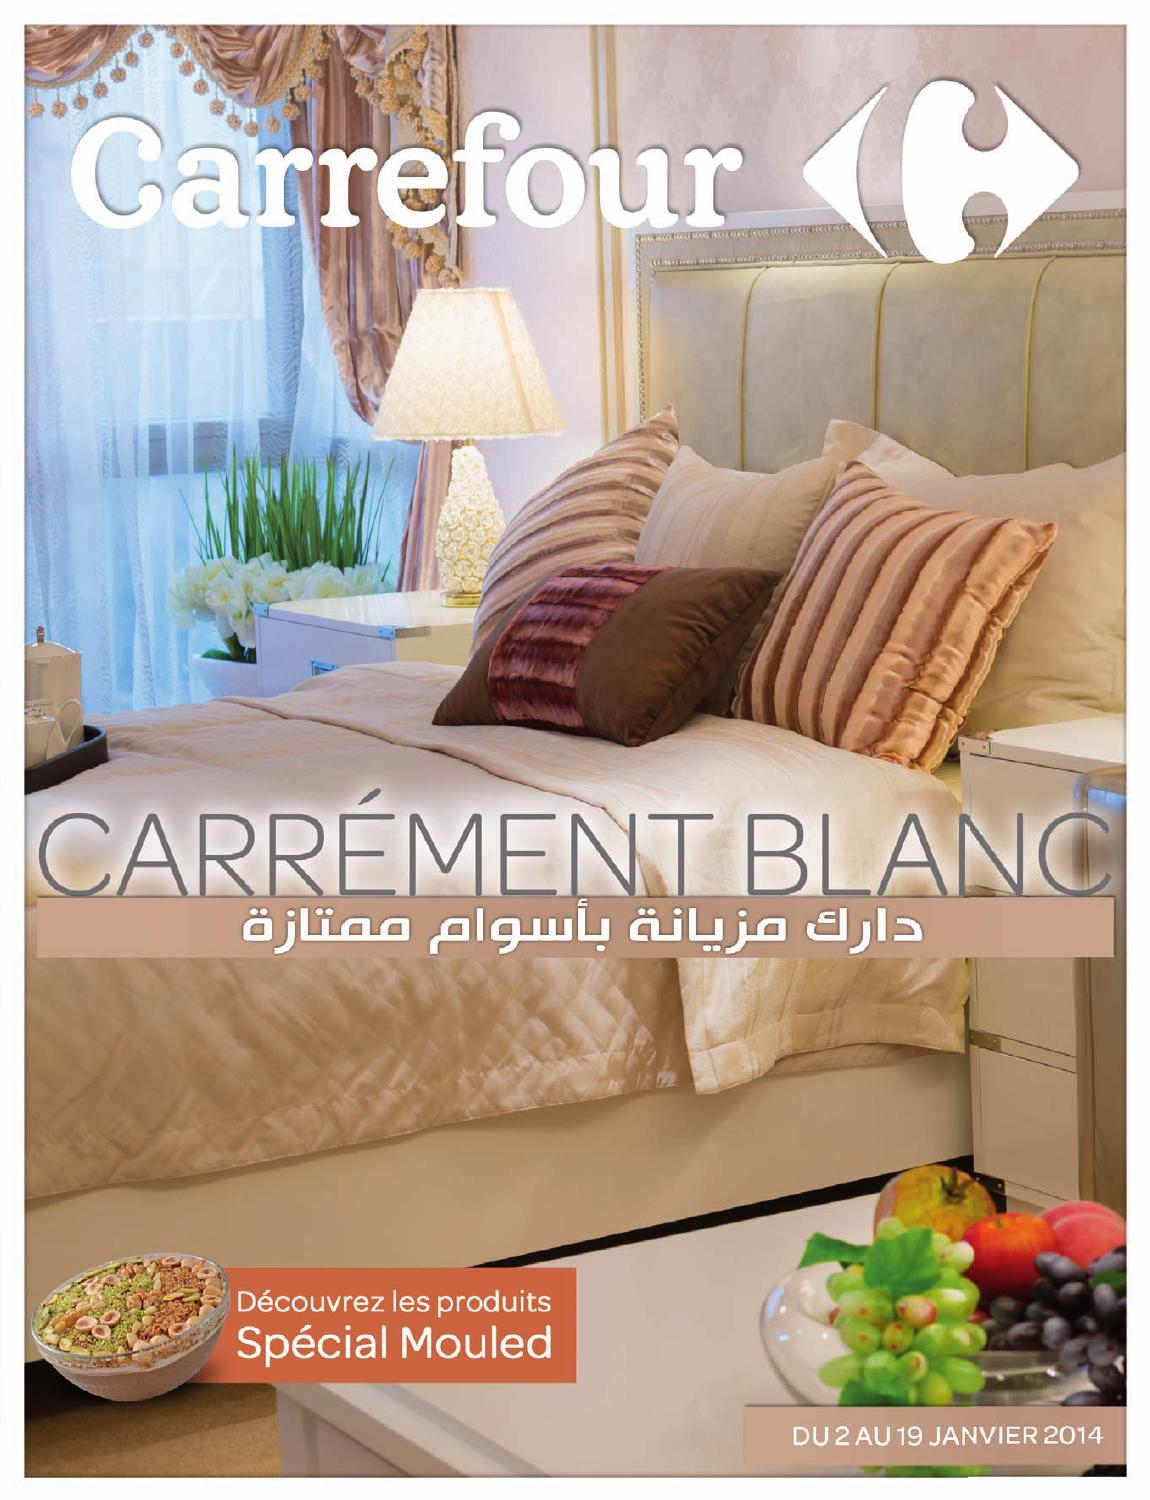 Catalogue Carrefour Carrement Blanc By Carrefour Tunisie Issuu